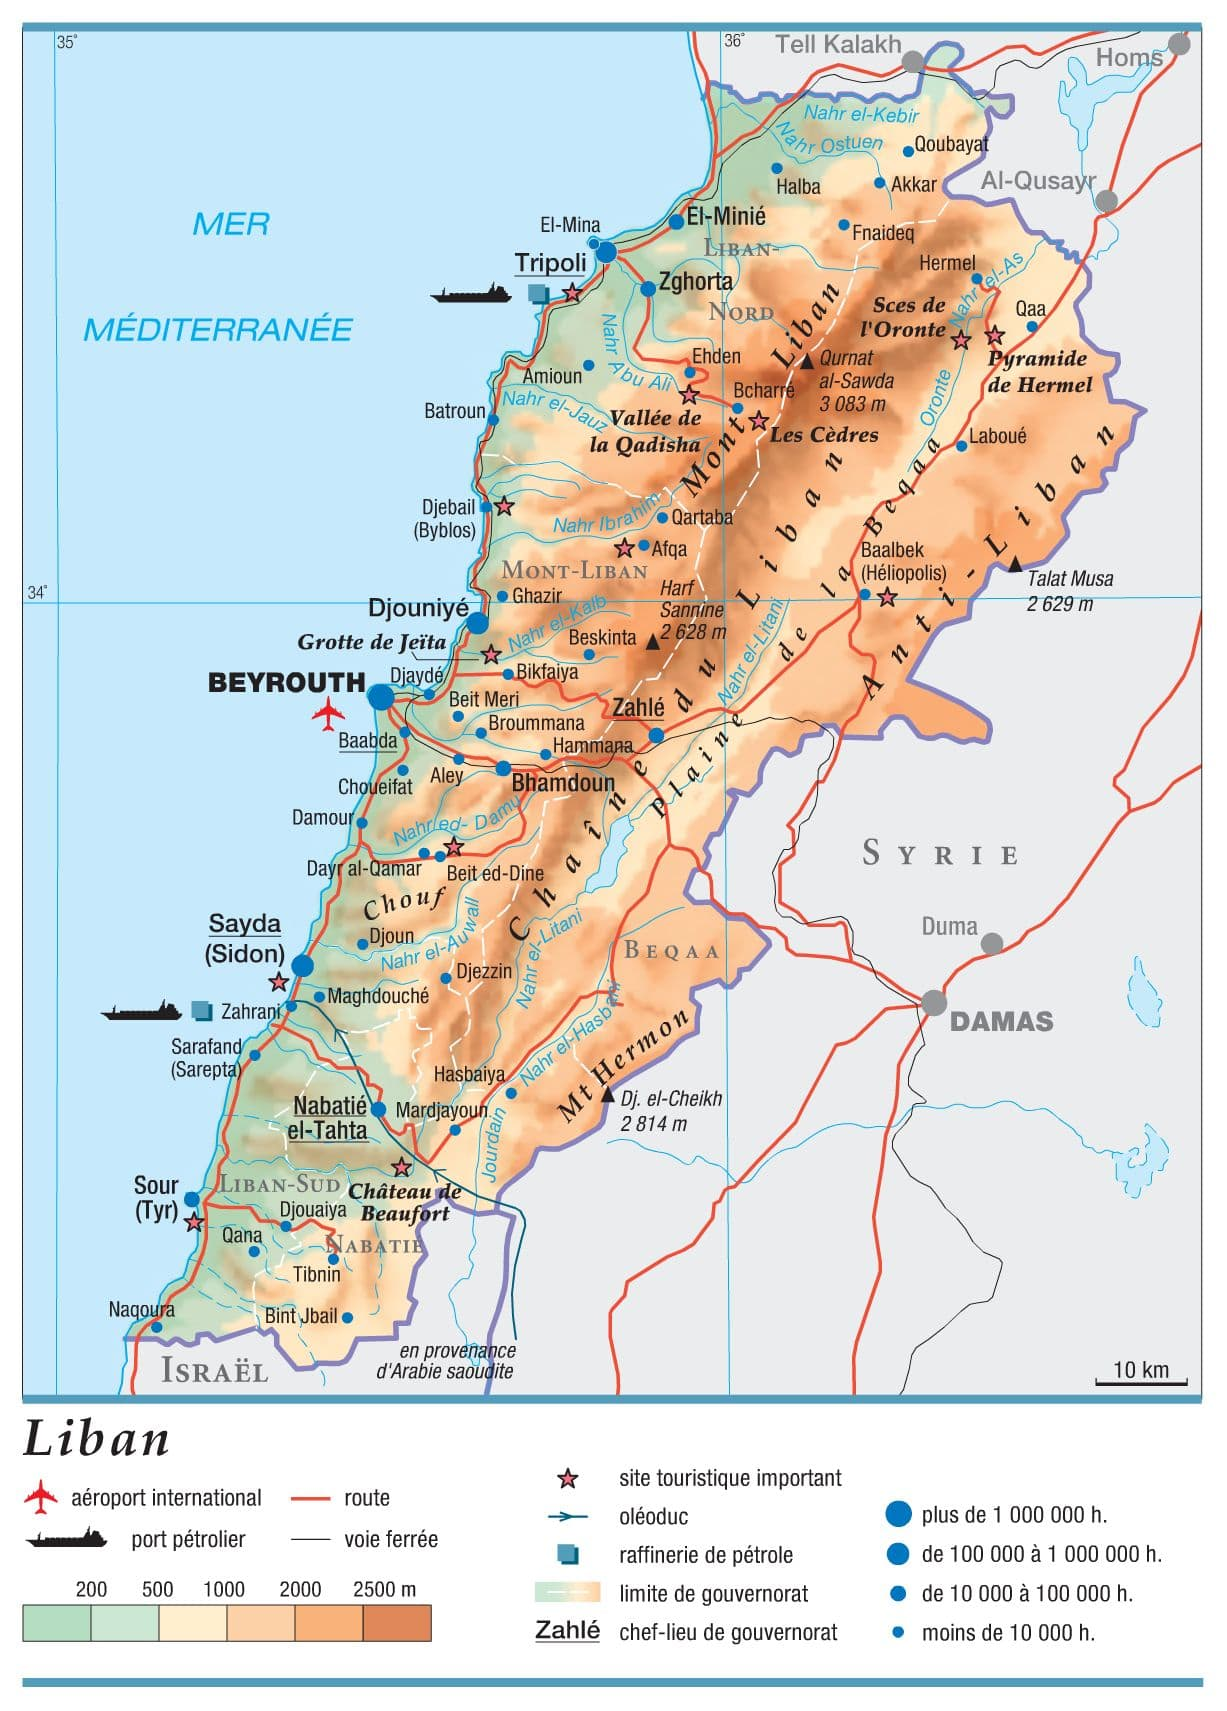 liban geographie